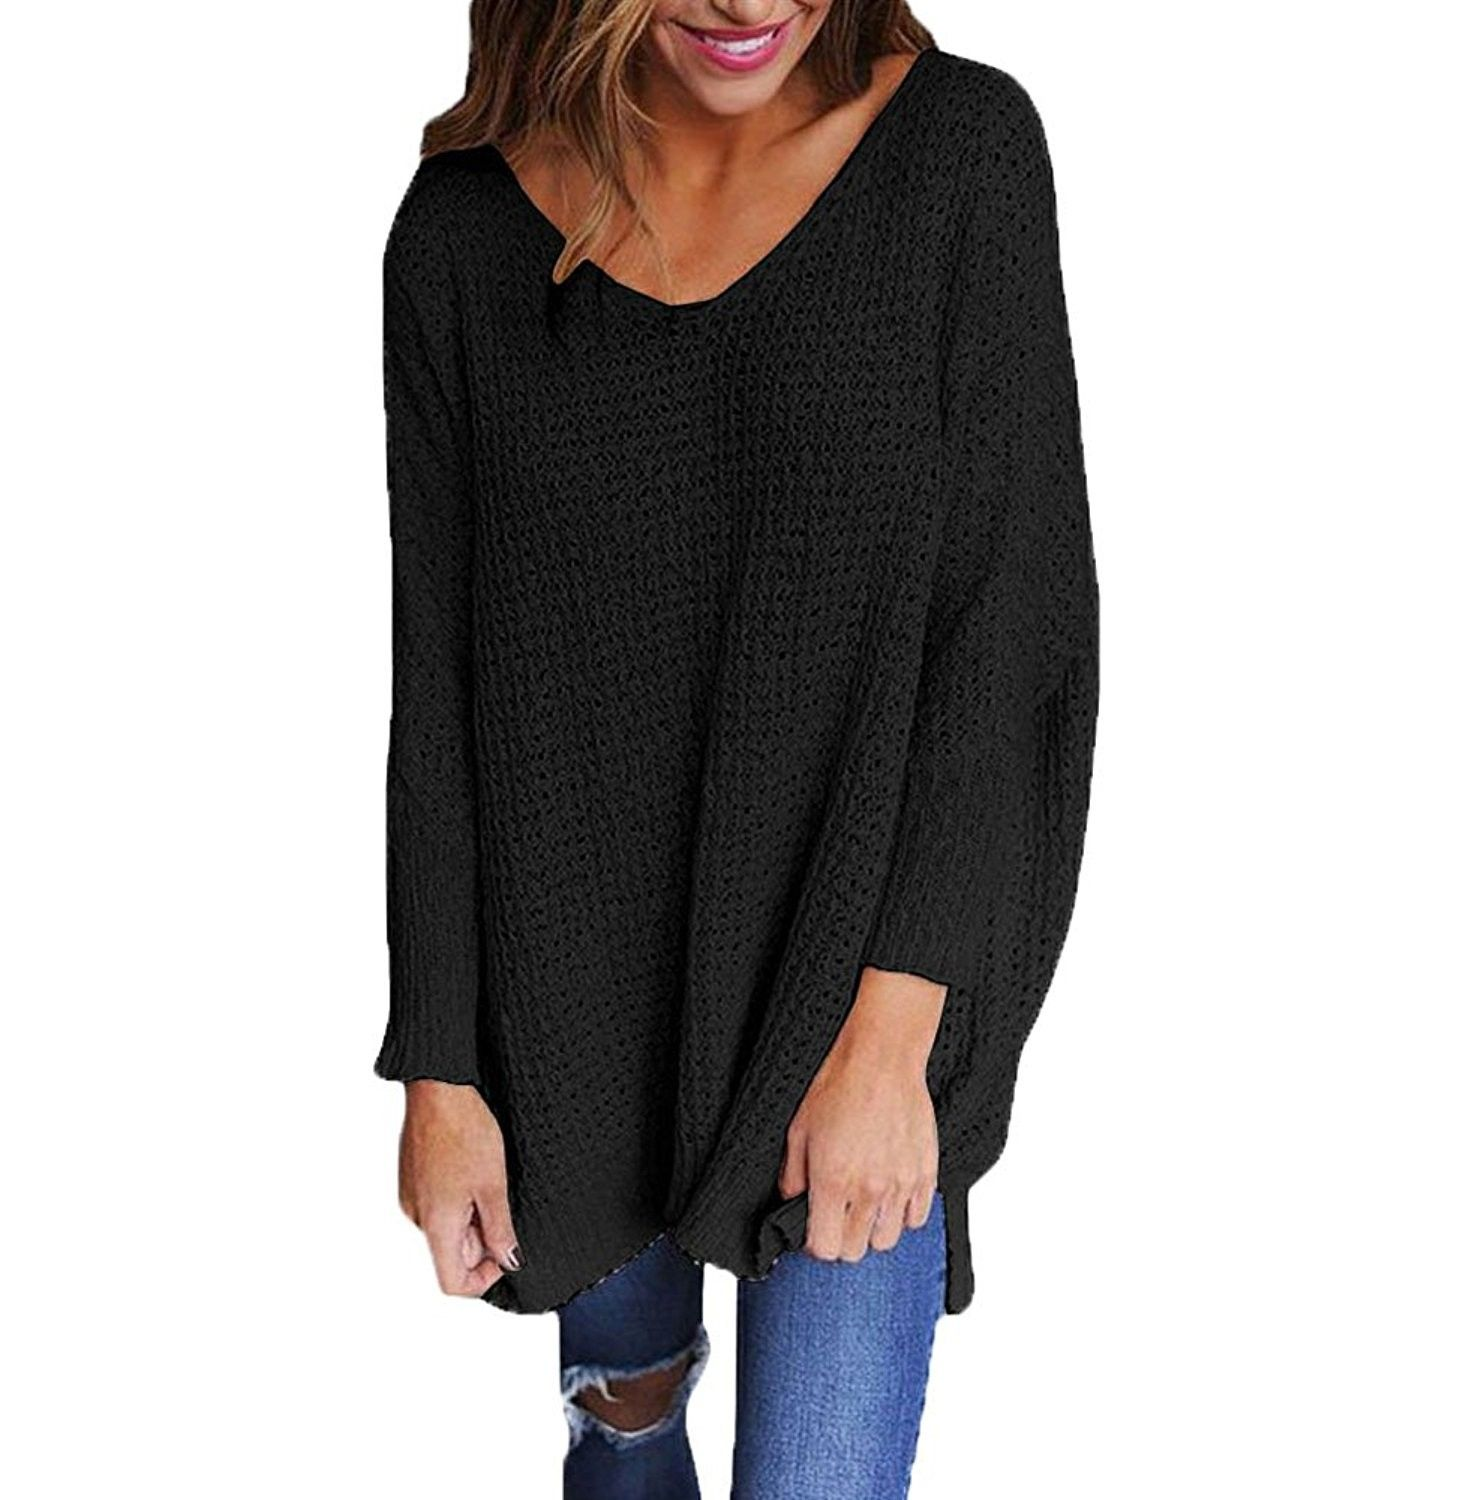 Womens Long Sleeve Sweater Blouse Ladies Oversized Knit Jumper Pullover Tops